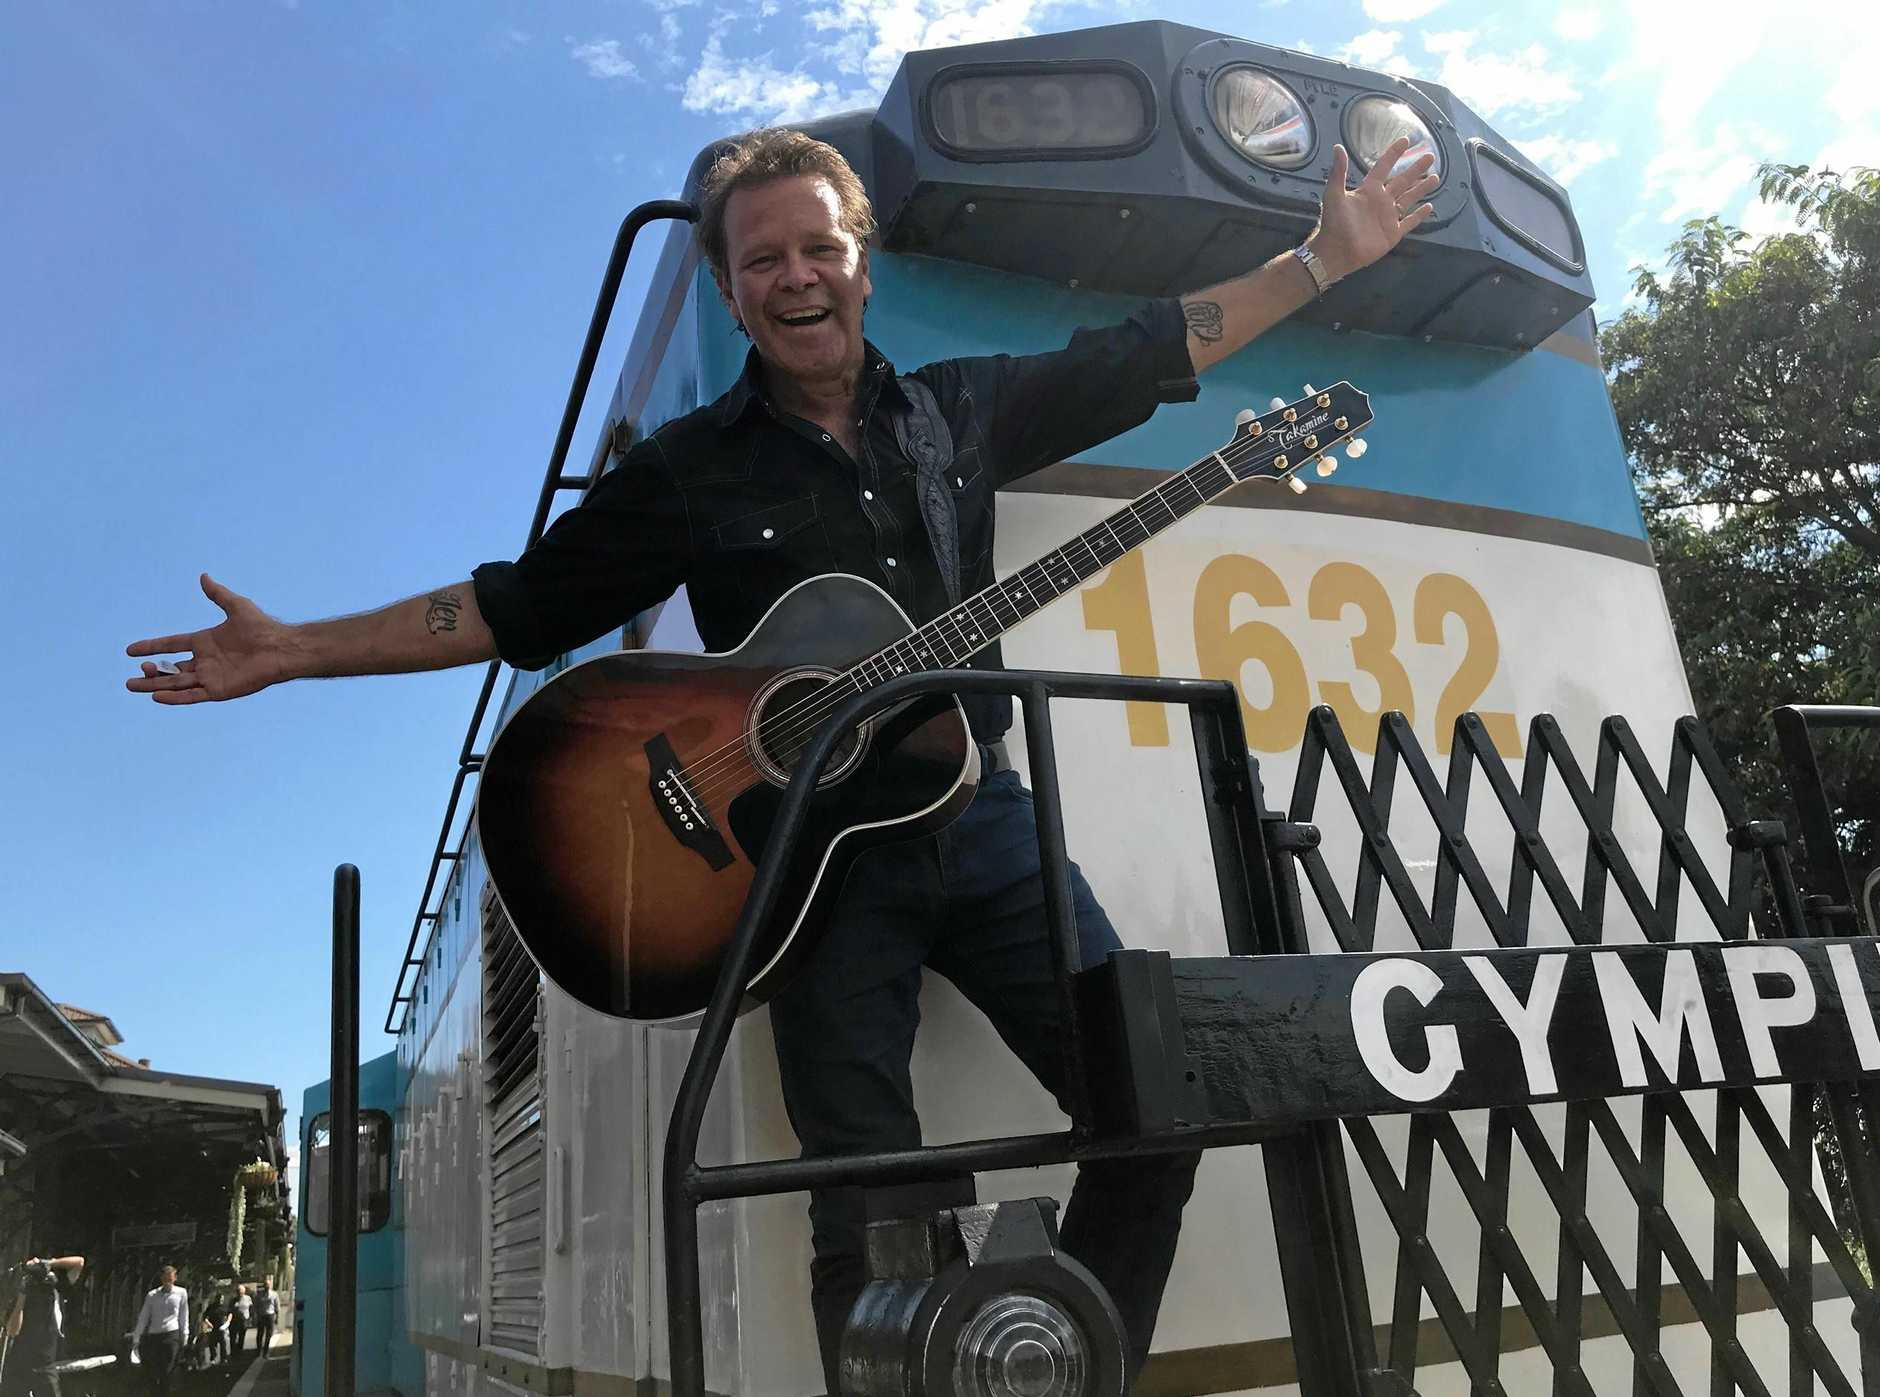 ALL ABOARD: Troy Cassar-Daley gets set to climb aboard the Muster train.